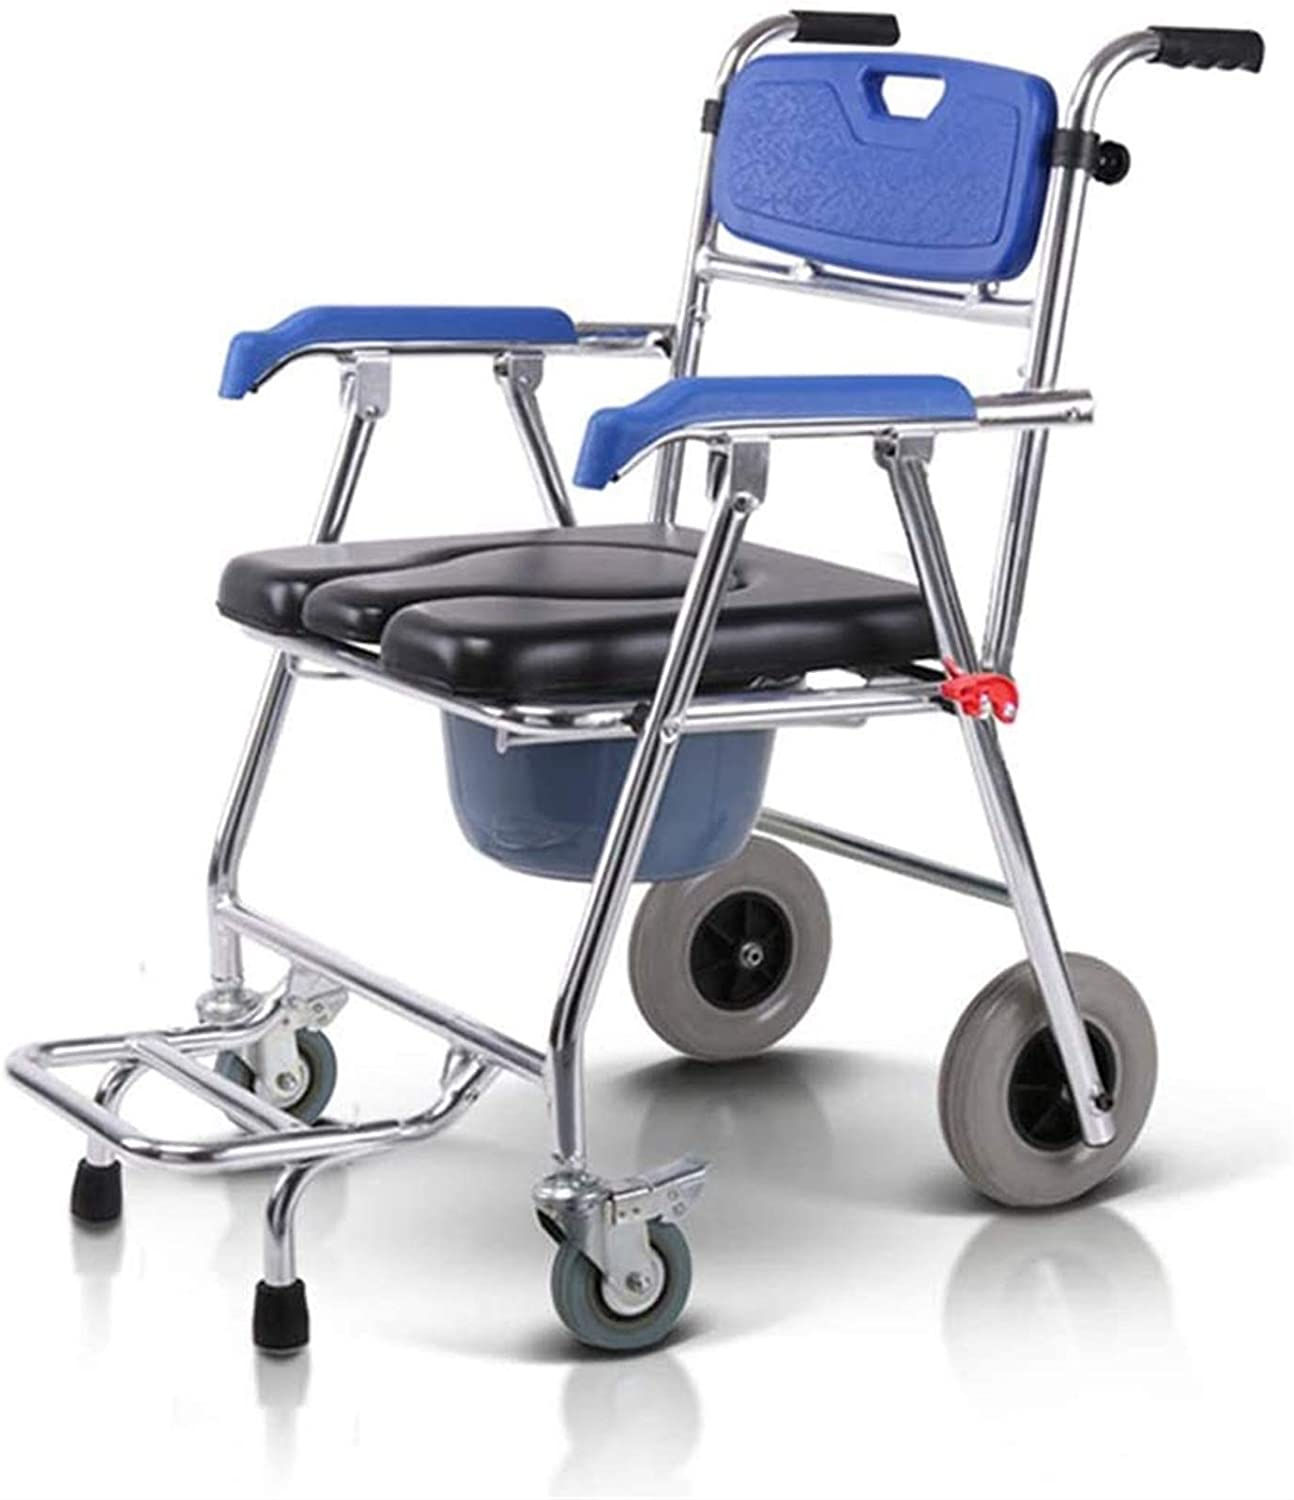 HMMN Folding Commode Chair with shop security Wheels Portable Upholst Aluminum